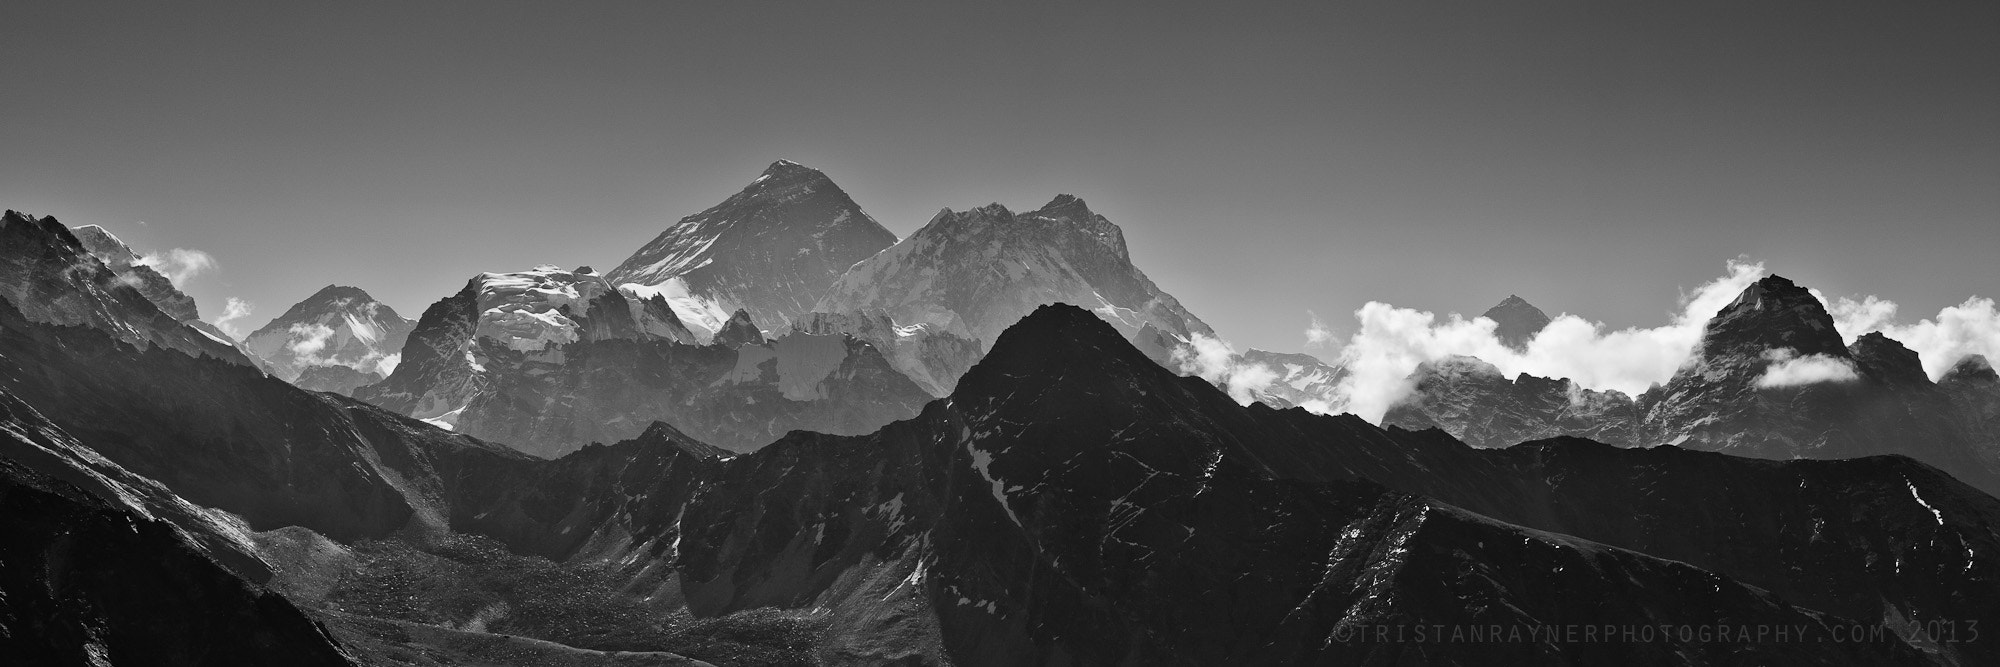 Photograph Everest Range by Tristan Rayner on 500px